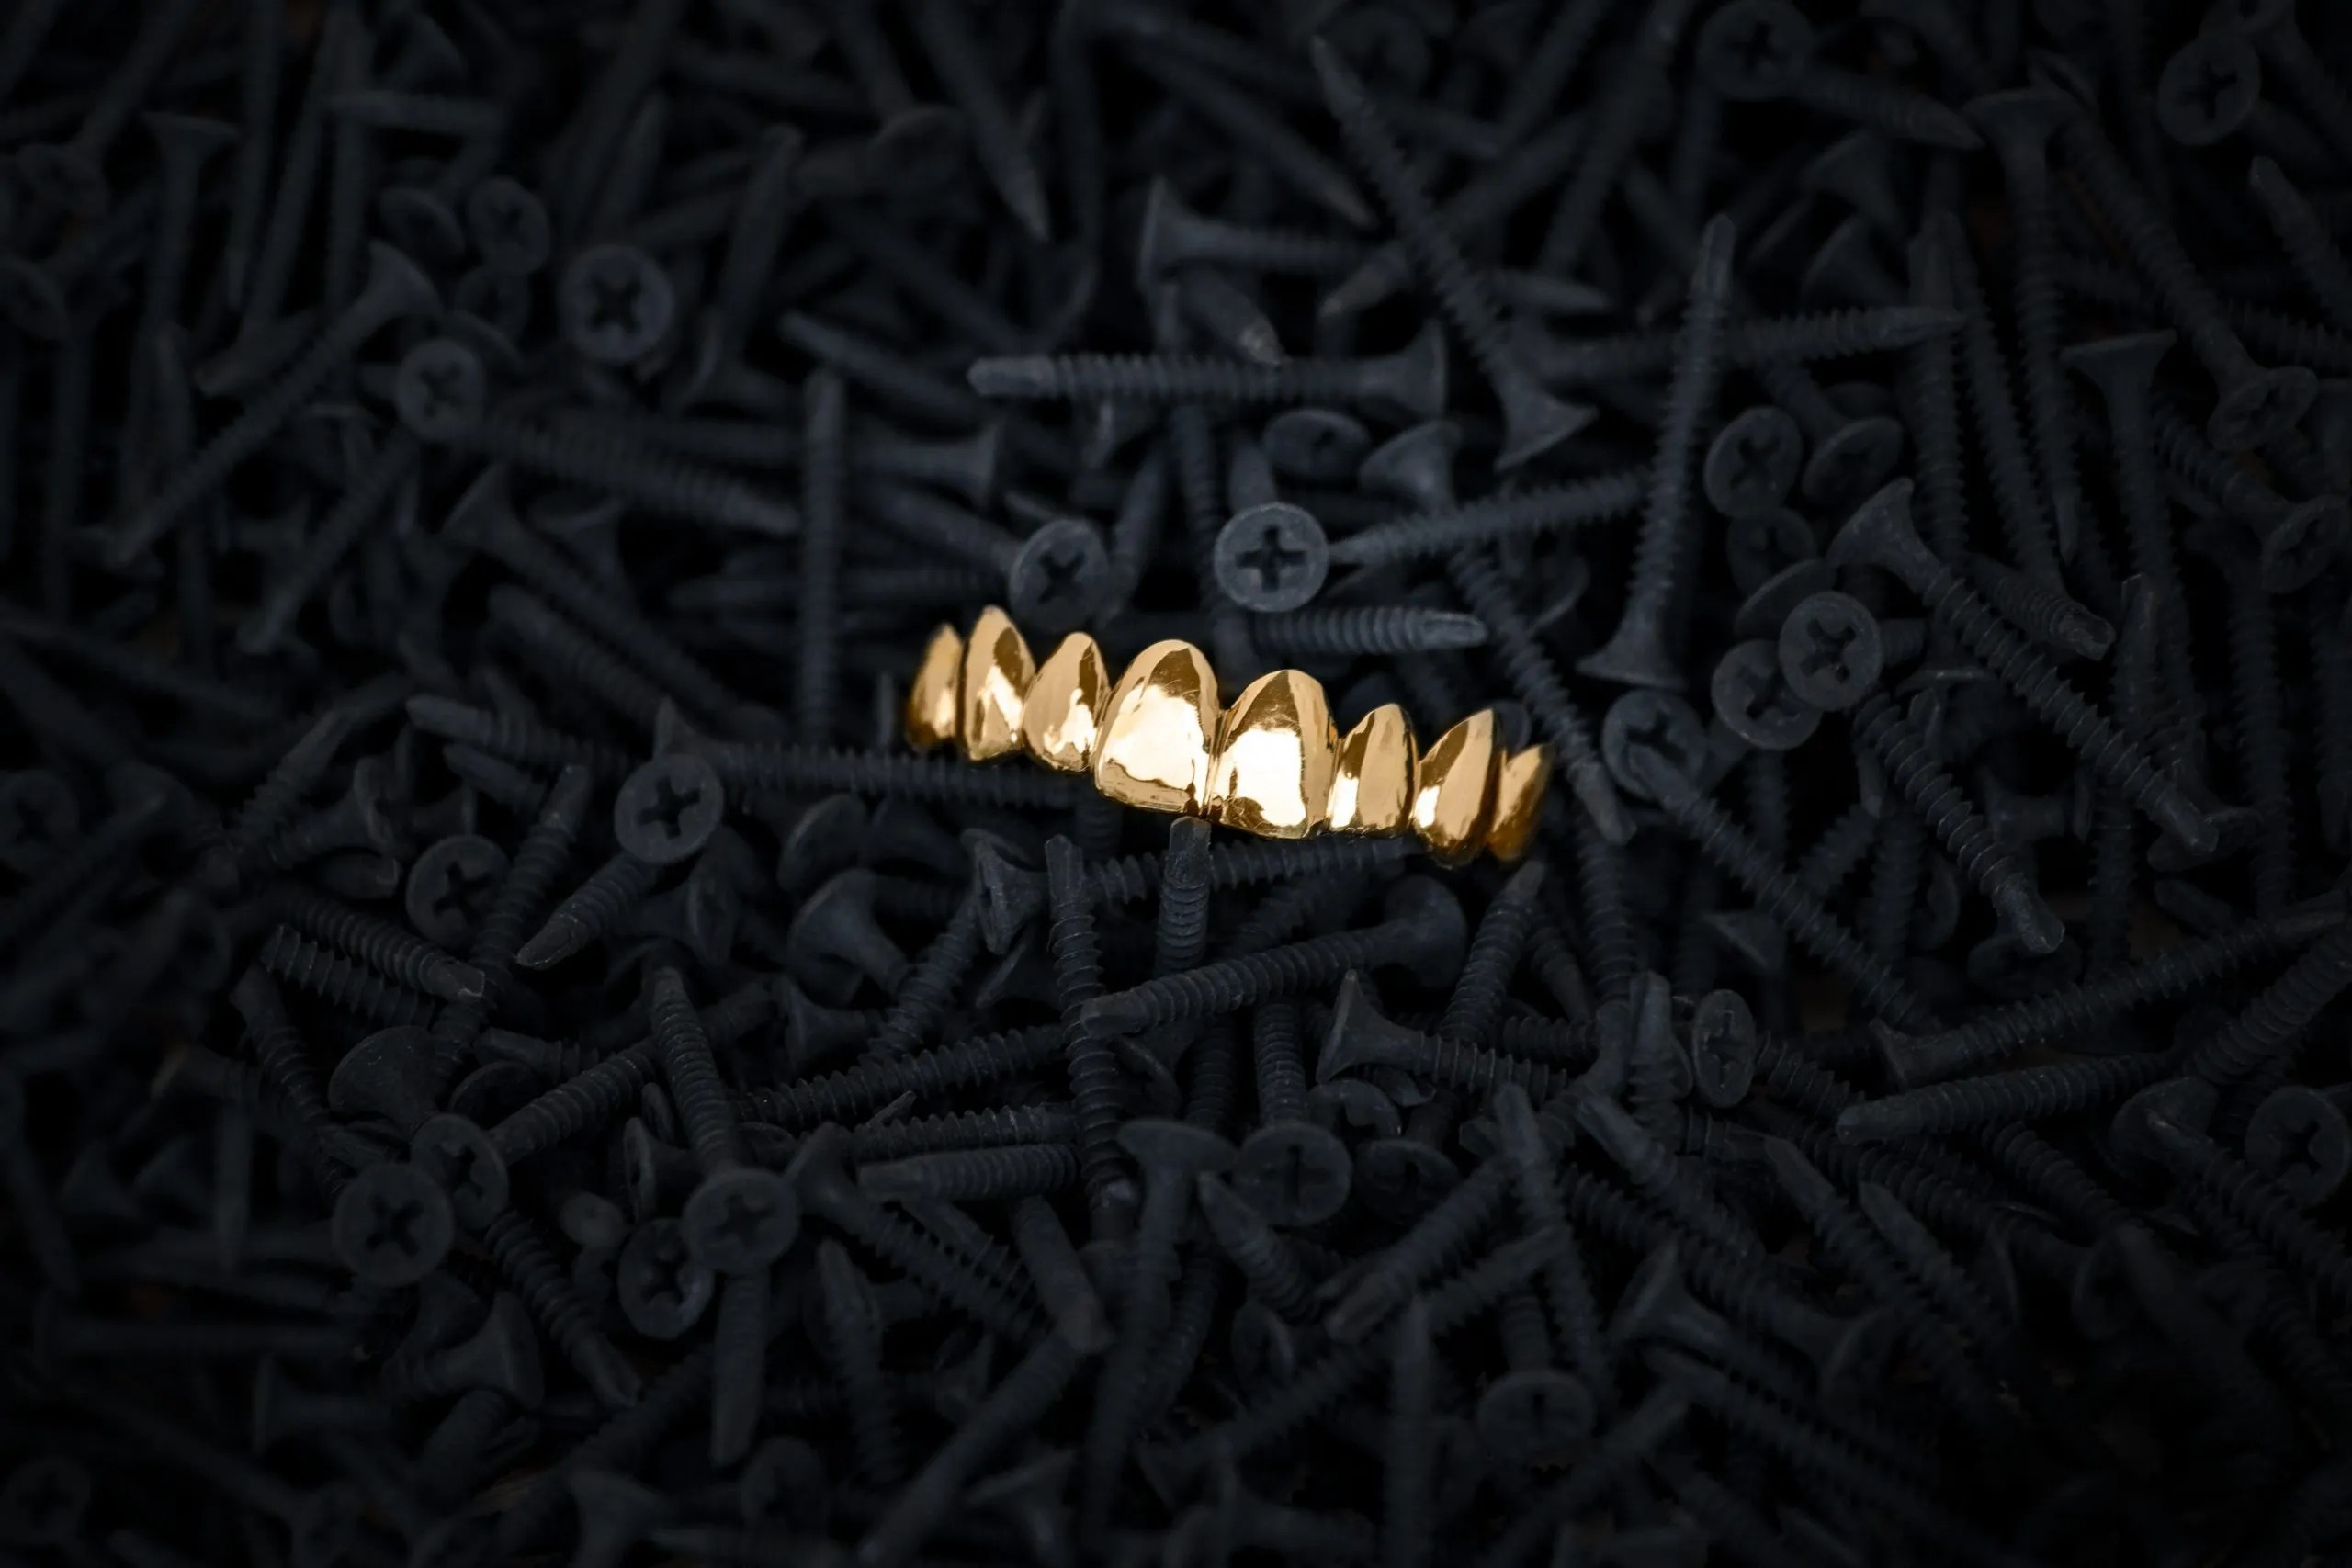 Goldbeisser - Grillz Shop - Smilez and Shine - Berlin Jewelery